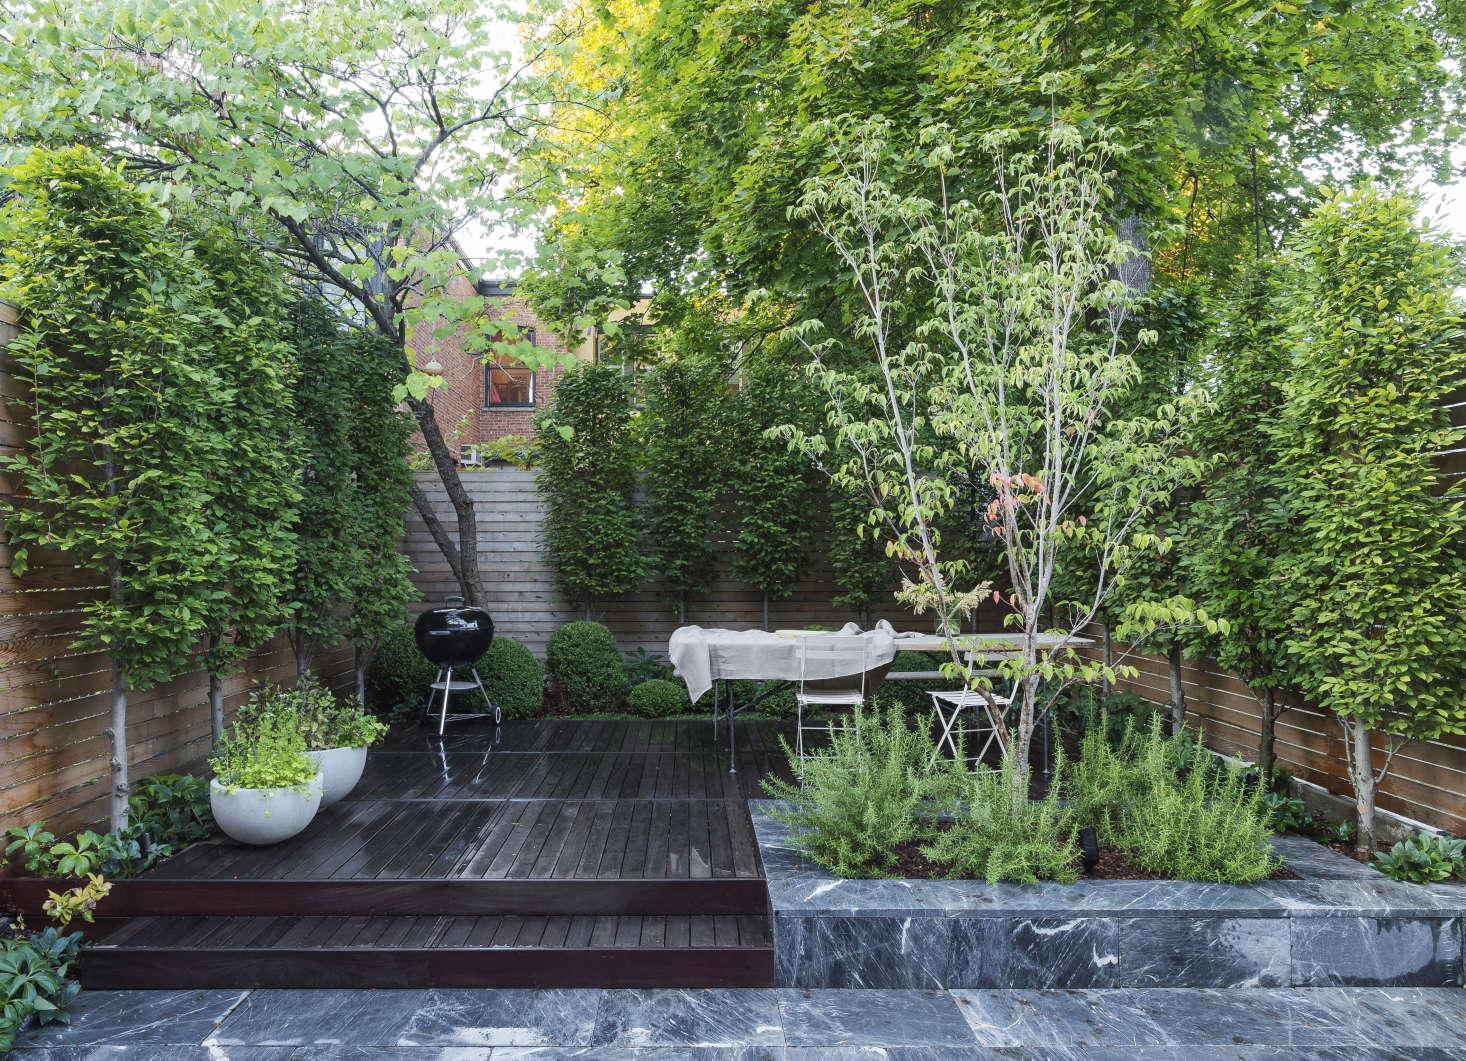 14 ideas to make a small garden look bigger gardenista for Creating a small garden